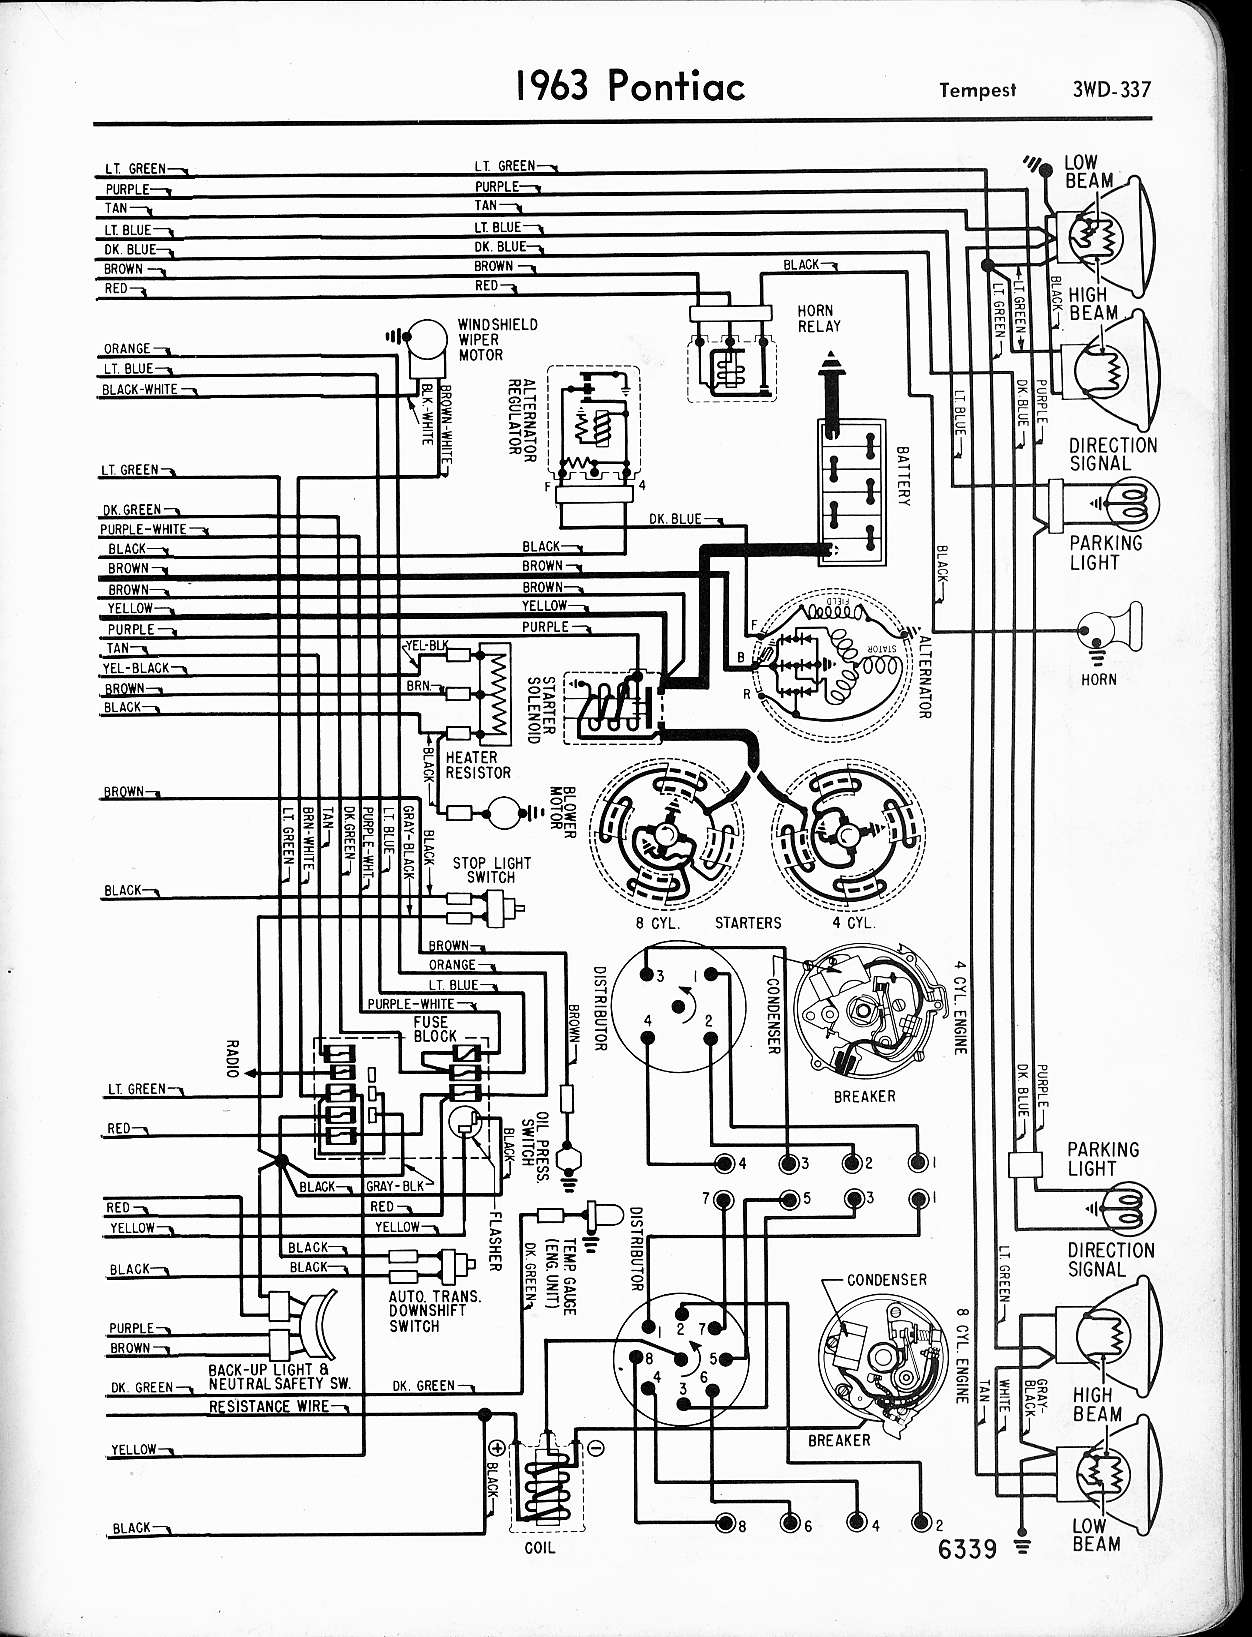 Wiring Diagram For 1963 Pontiac House Symbols 2000 Montana Wallace Racing Diagrams Rh Wallaceracing Com